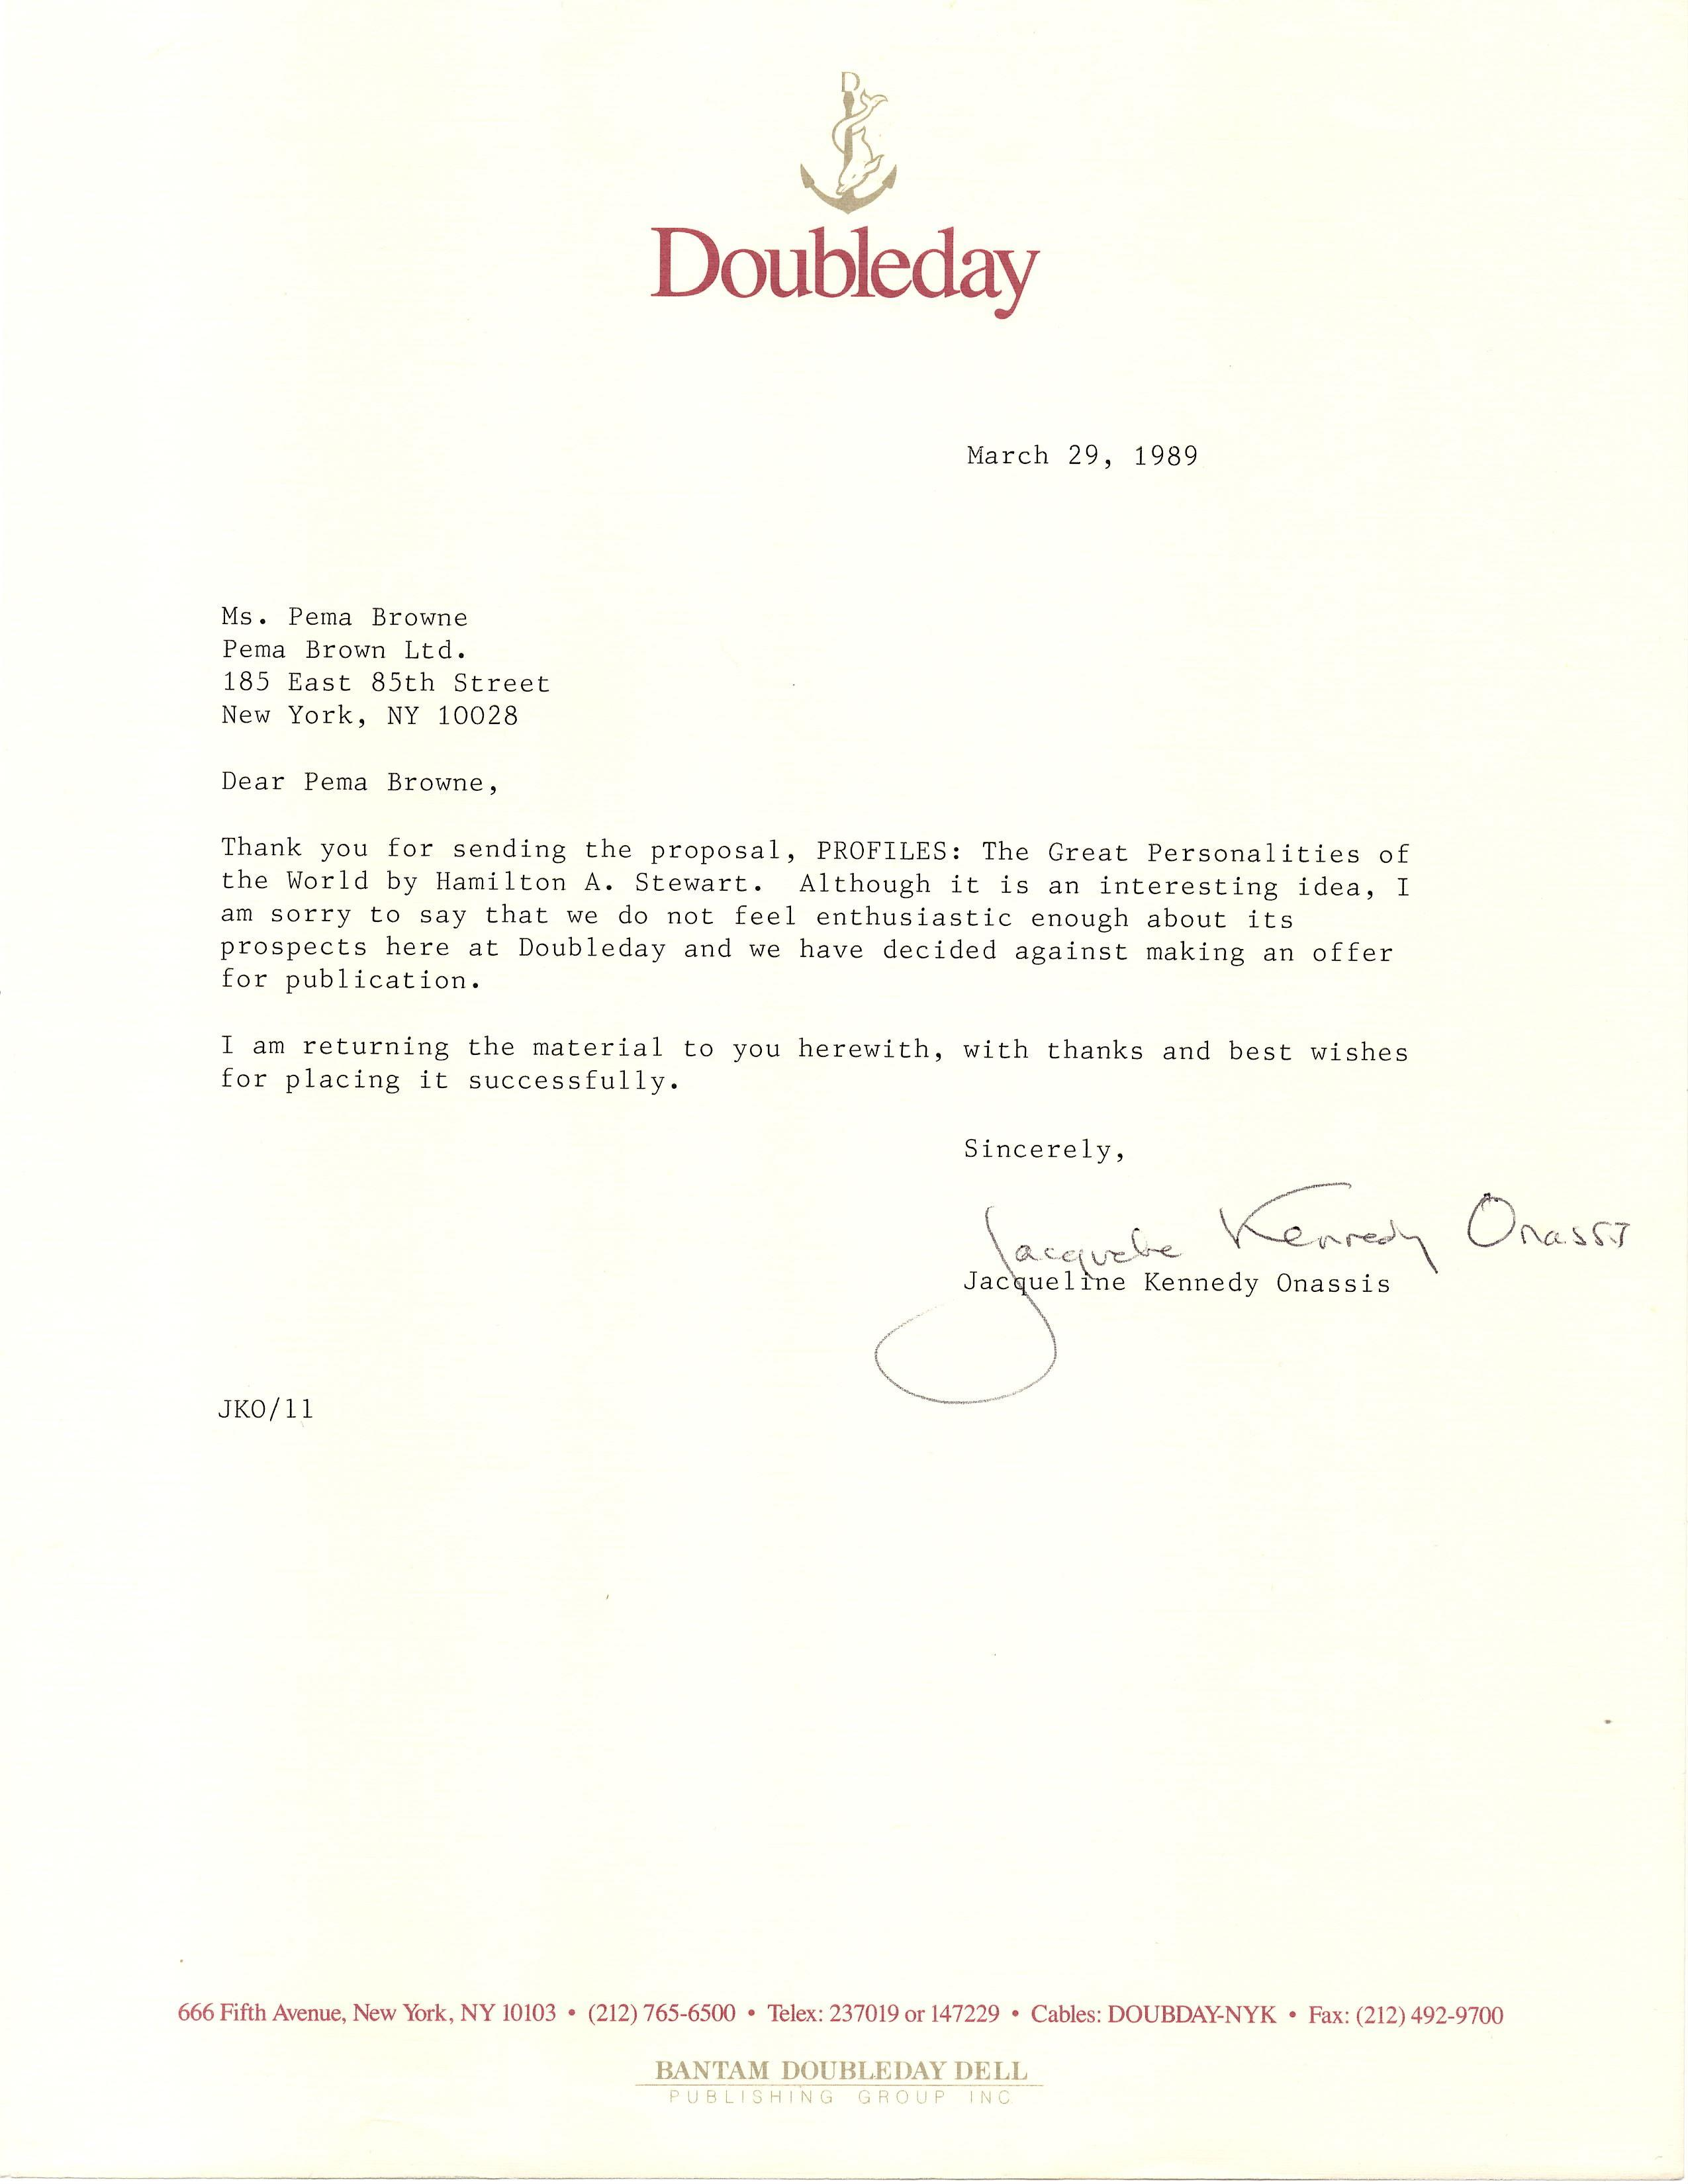 Jackie Kennedy Typed Letter Signed, While Working at Doubleday